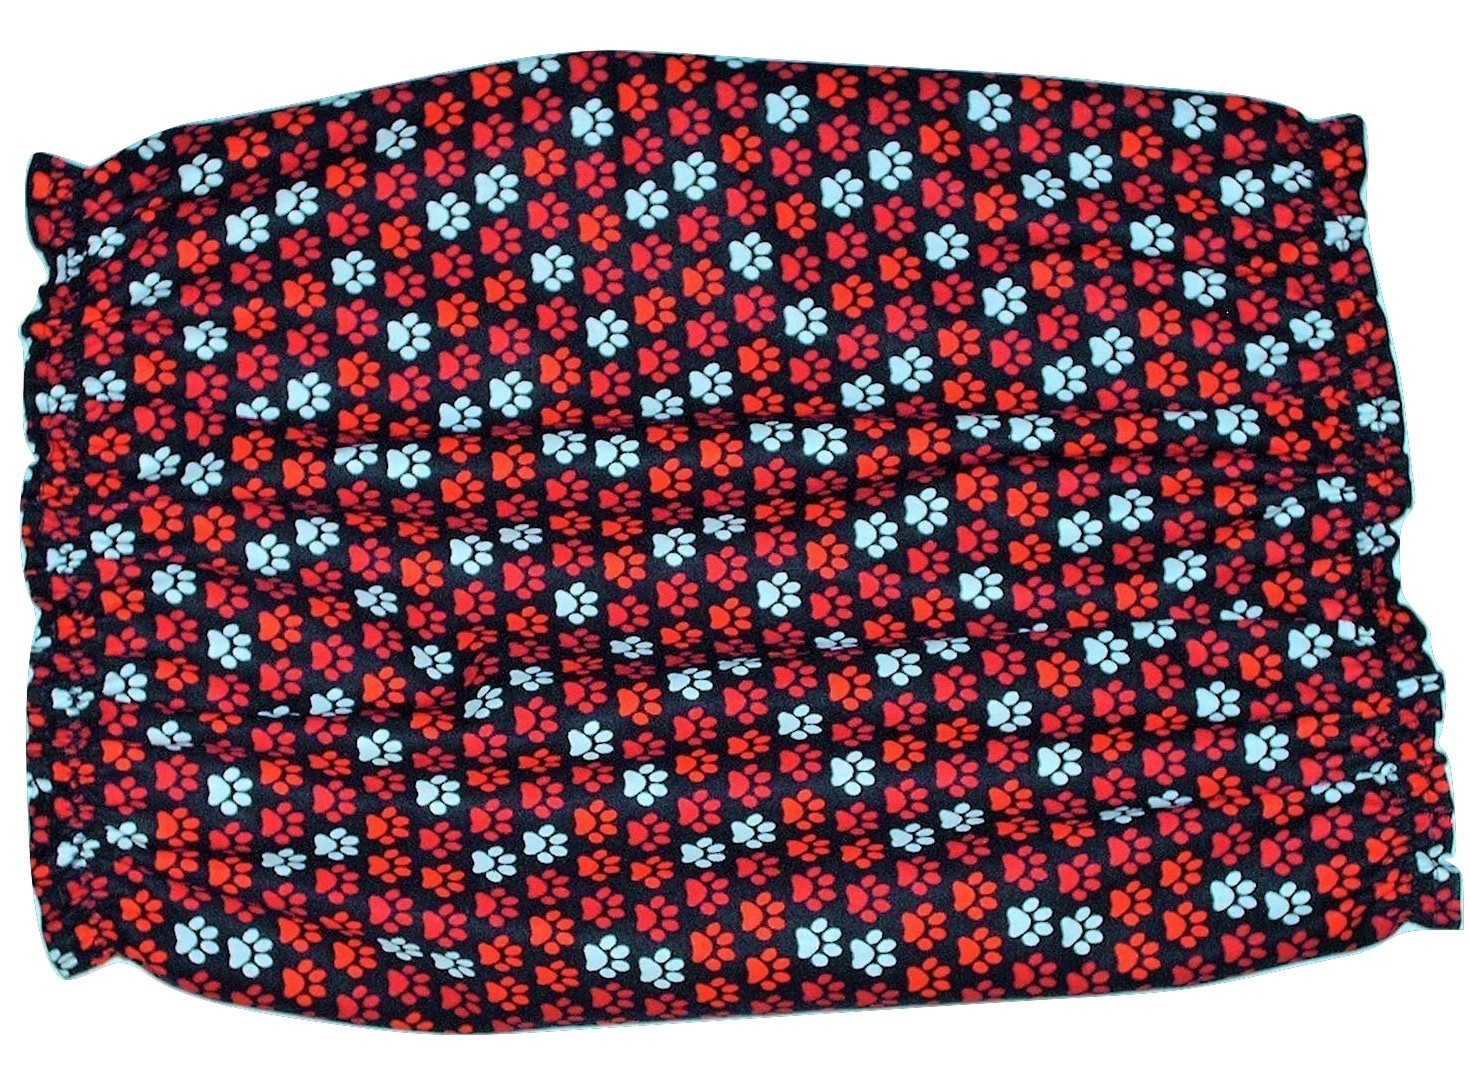 Handmade Dog Snood Black with Red White Paw Prints Cotton Size Large